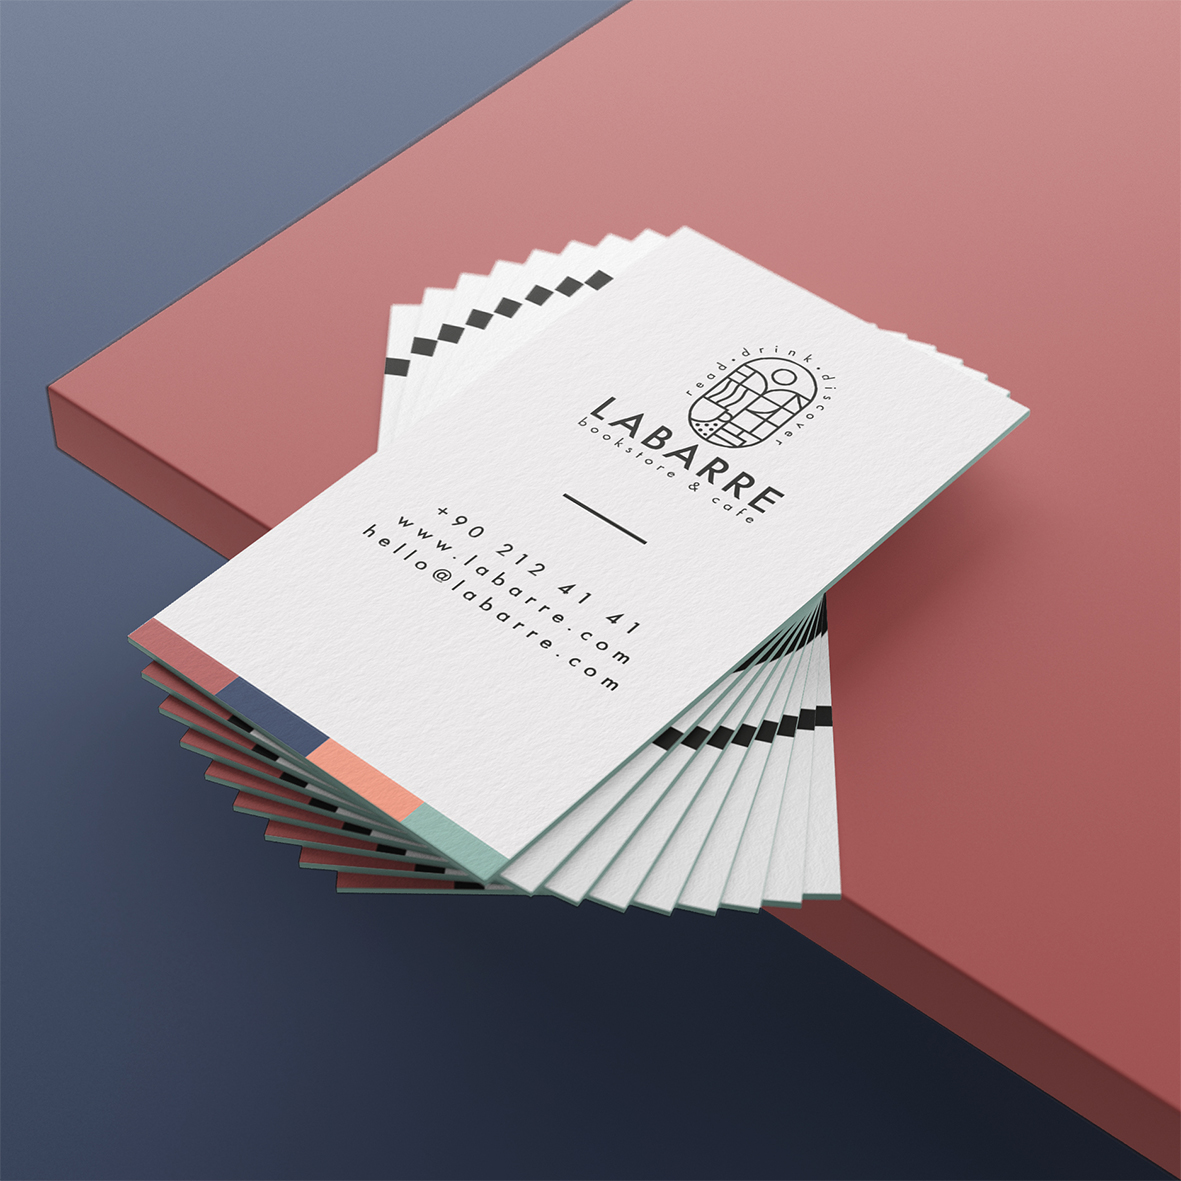 labarre_bookstore_cafe_identity_business_card